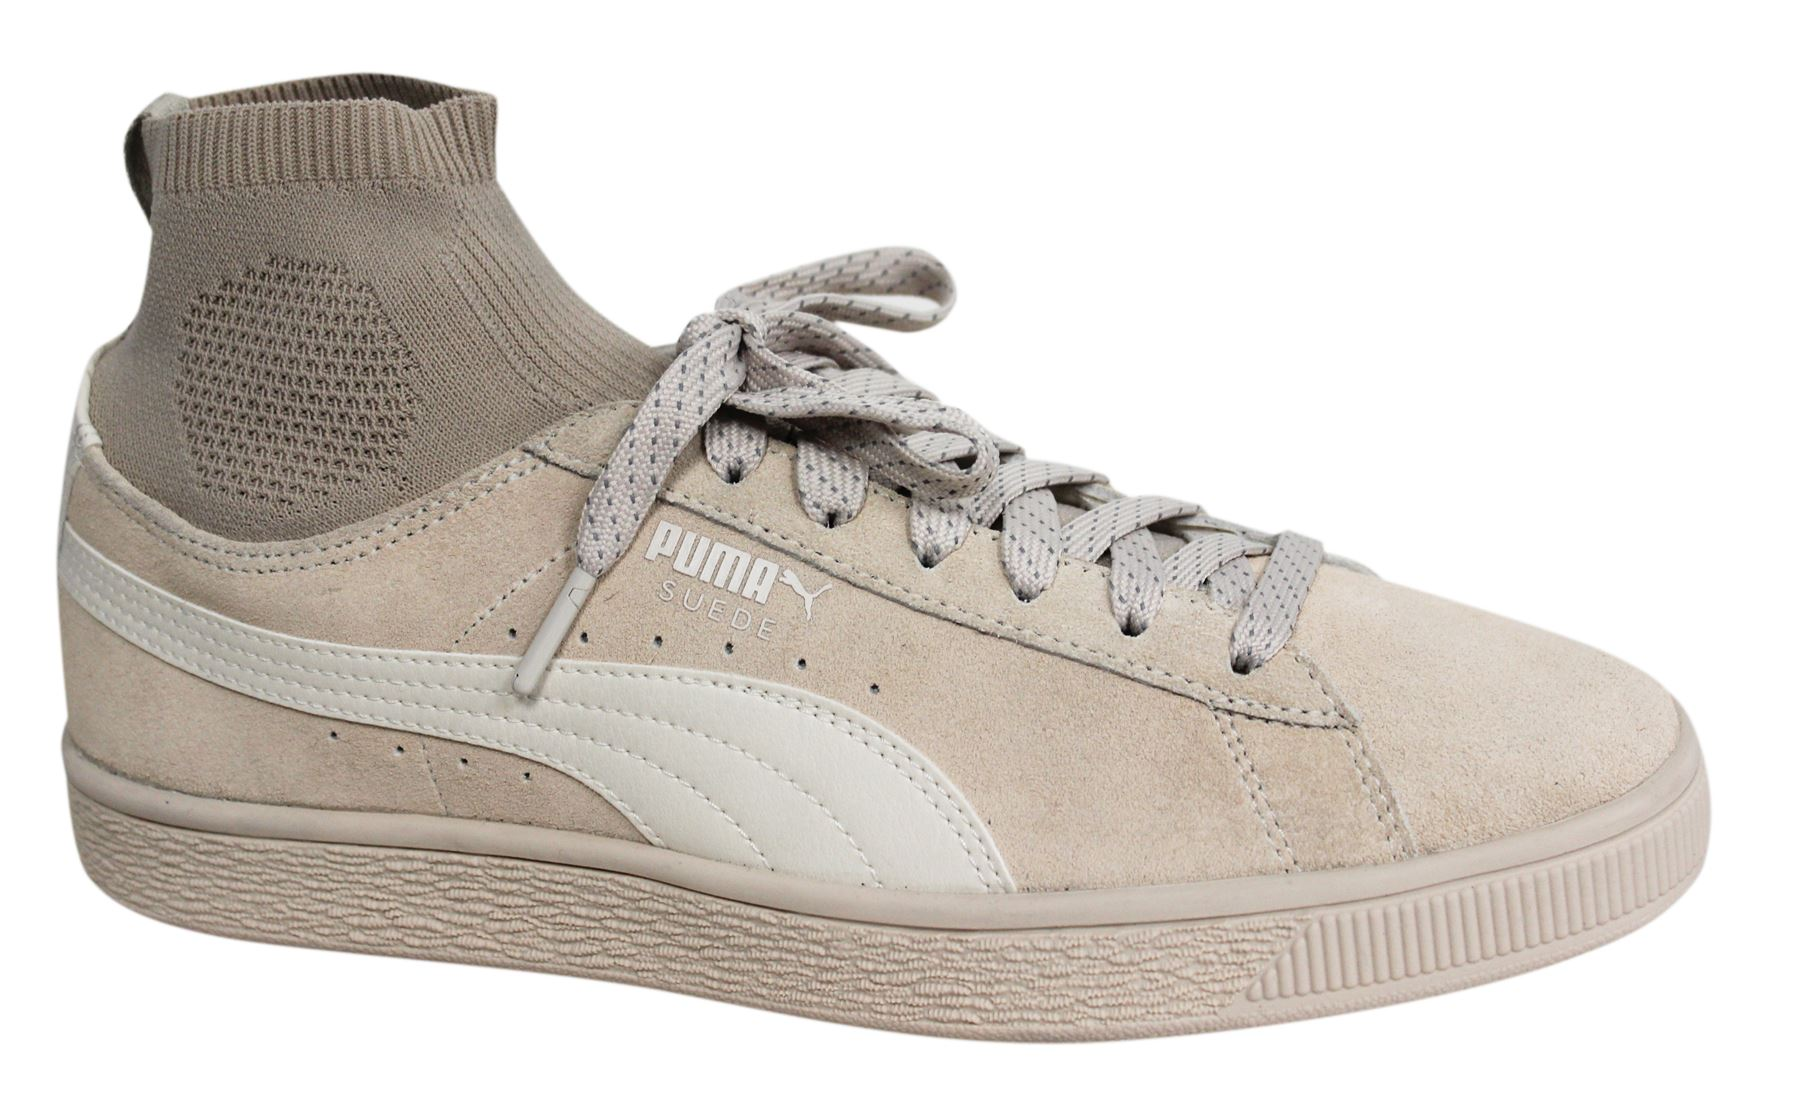 Details about Puma Suede Classic Sock Lace Up Beige Leather Mens Trainers 364074 02 B63C